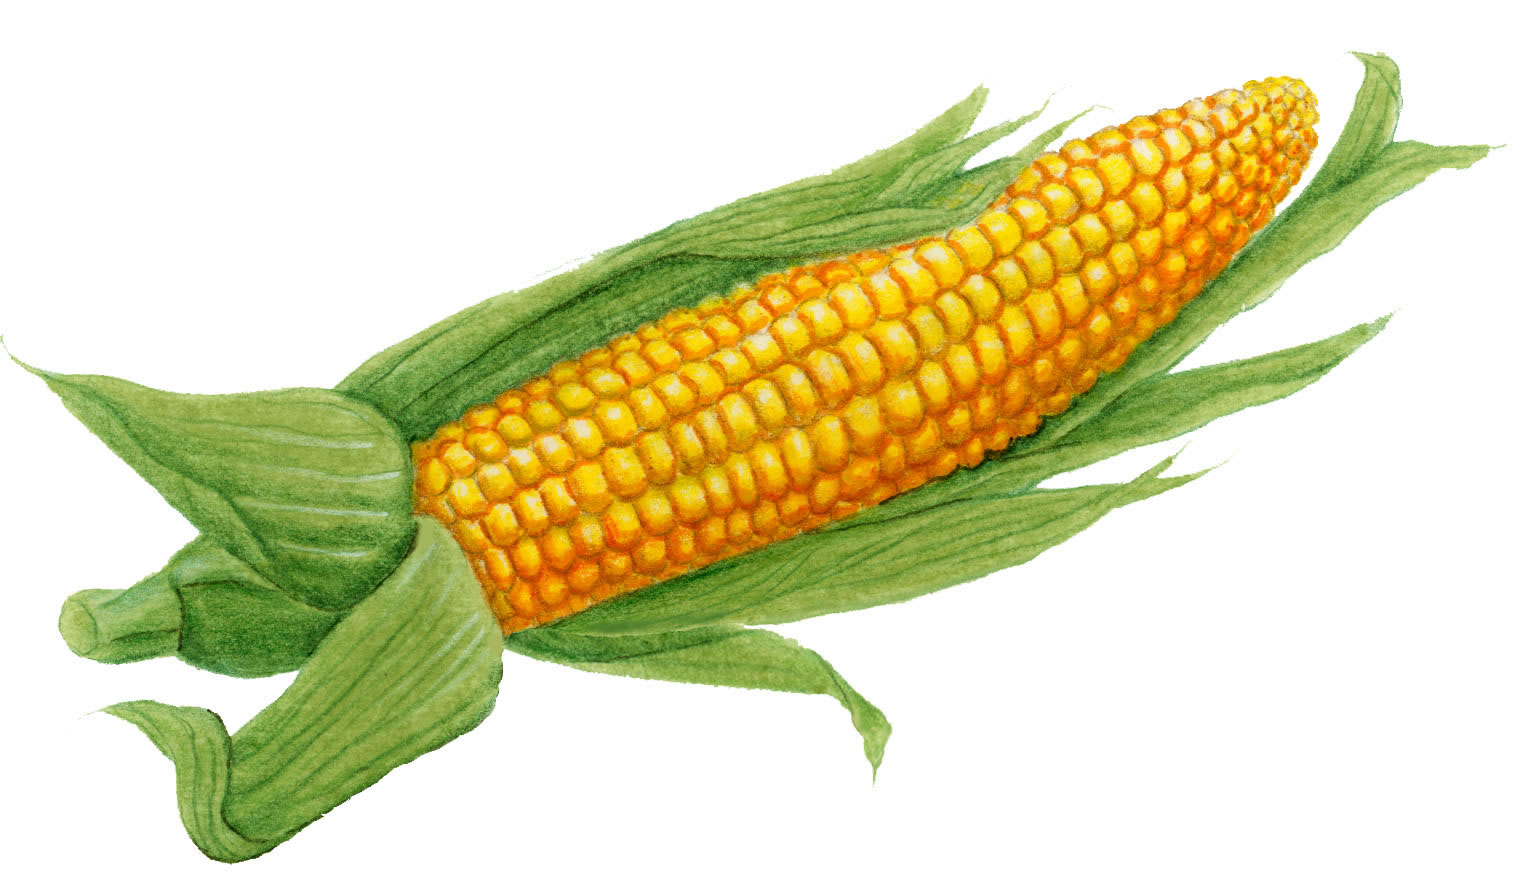 Drawn korn ear corn Of Cob draw a corn